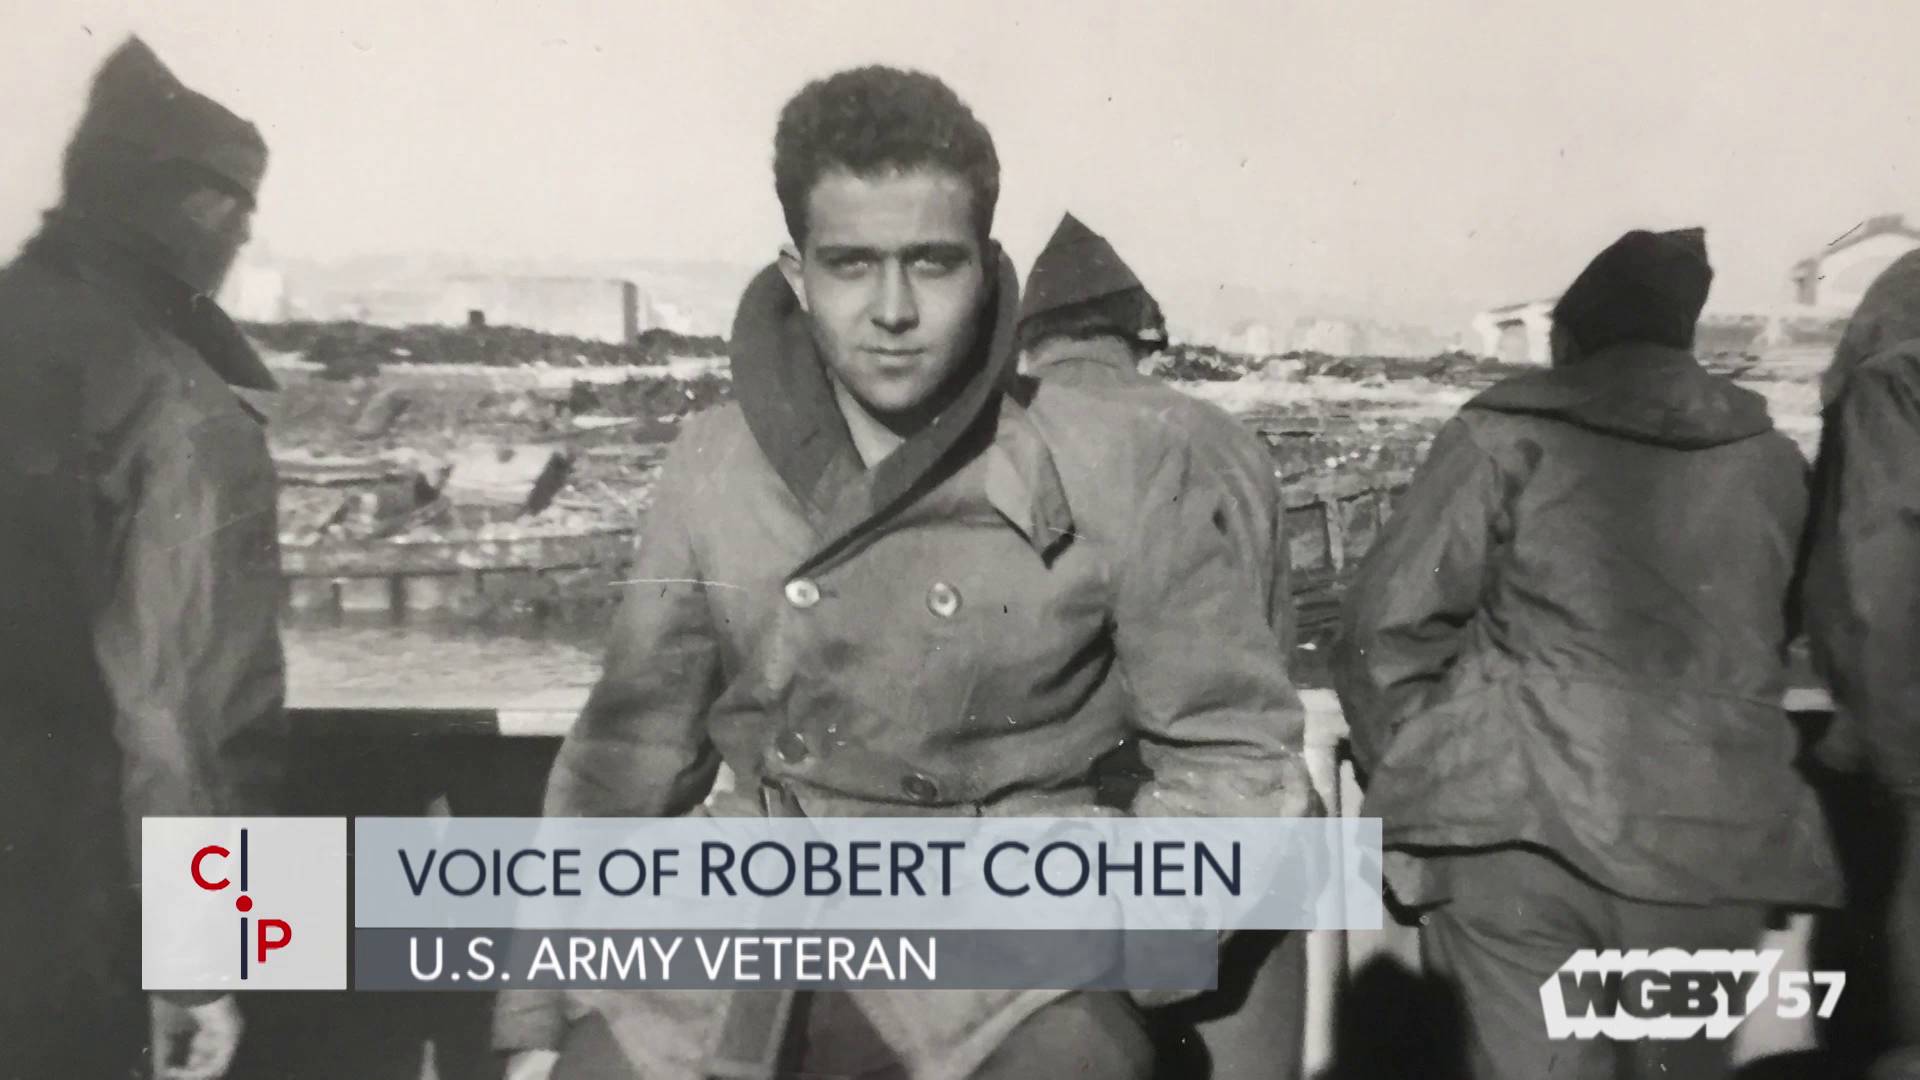 Jewish American WWII Vet Robert Cohen Served in the European Theater